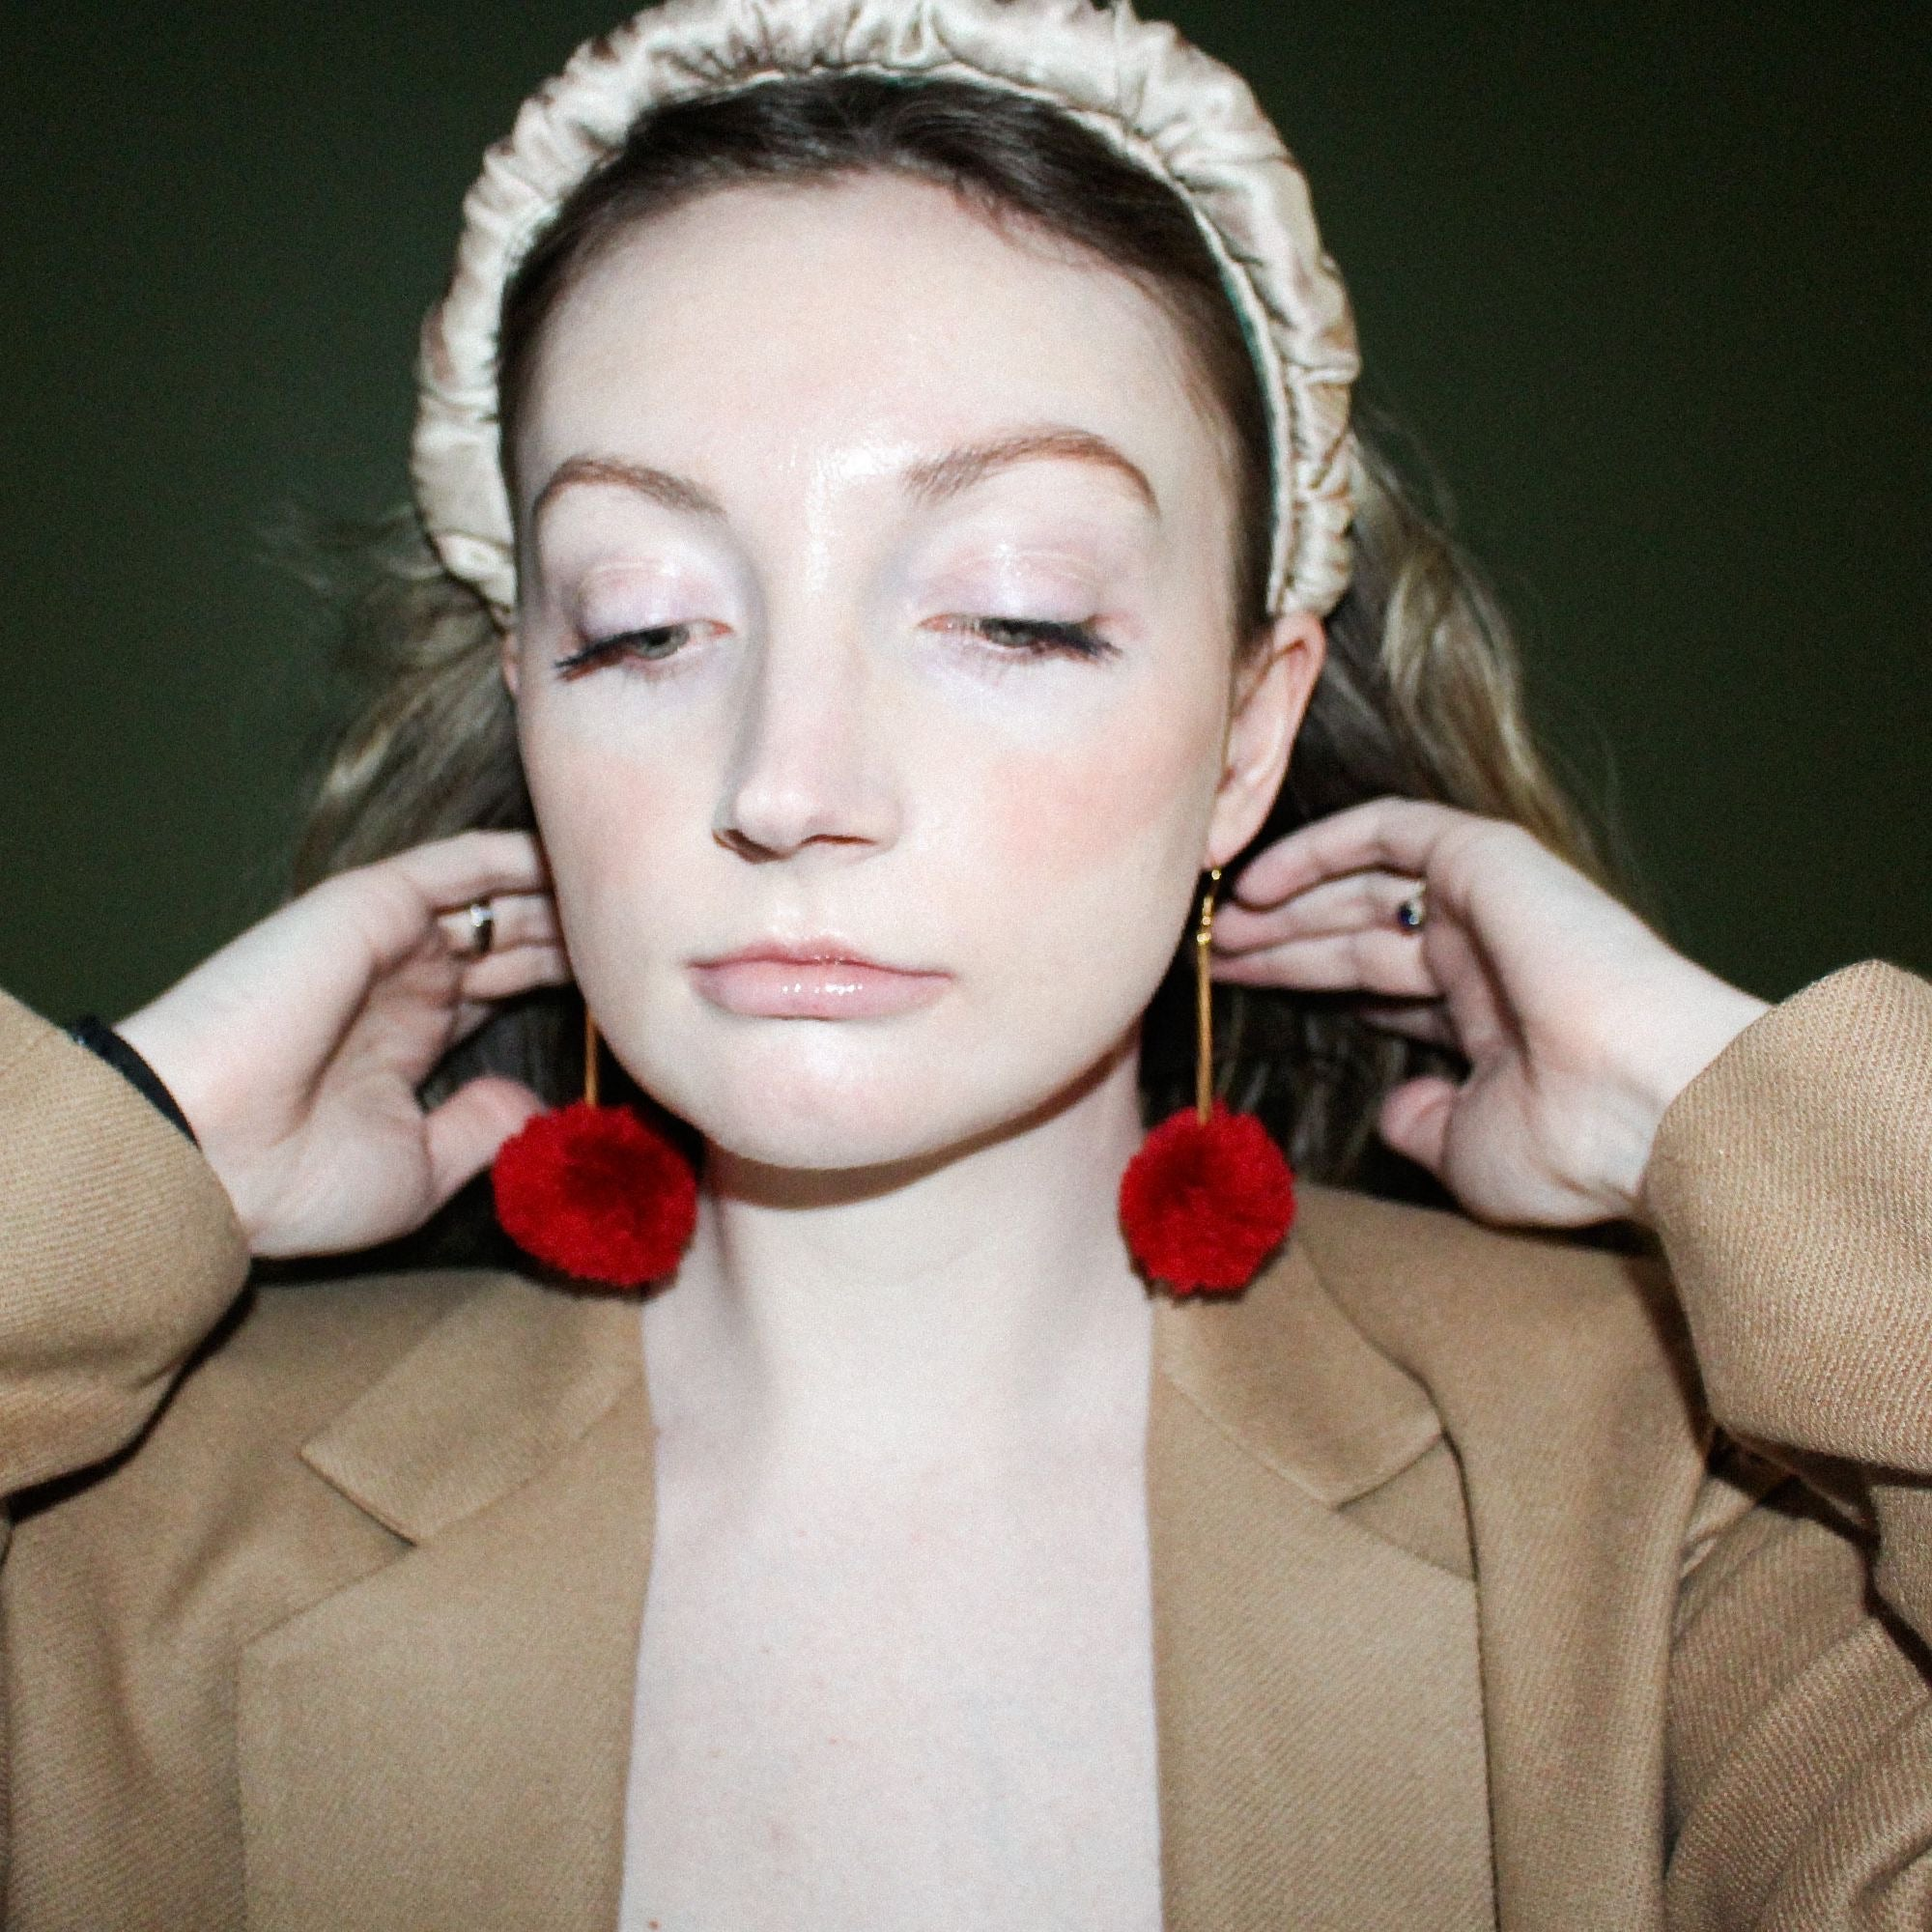 vK. Pom Drop Earrings  - Red